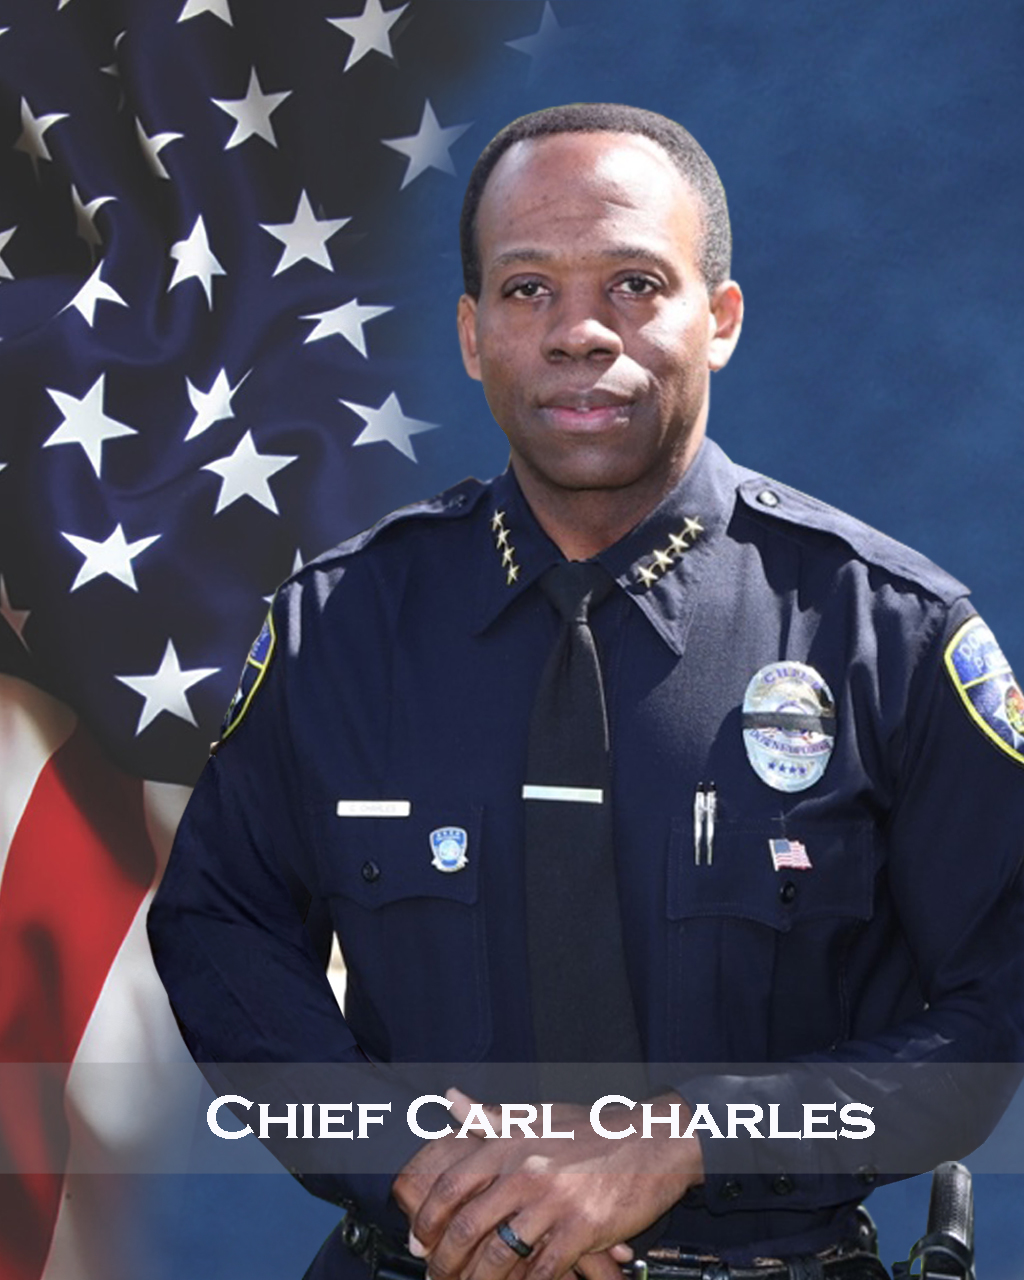 Chief Carl Charles